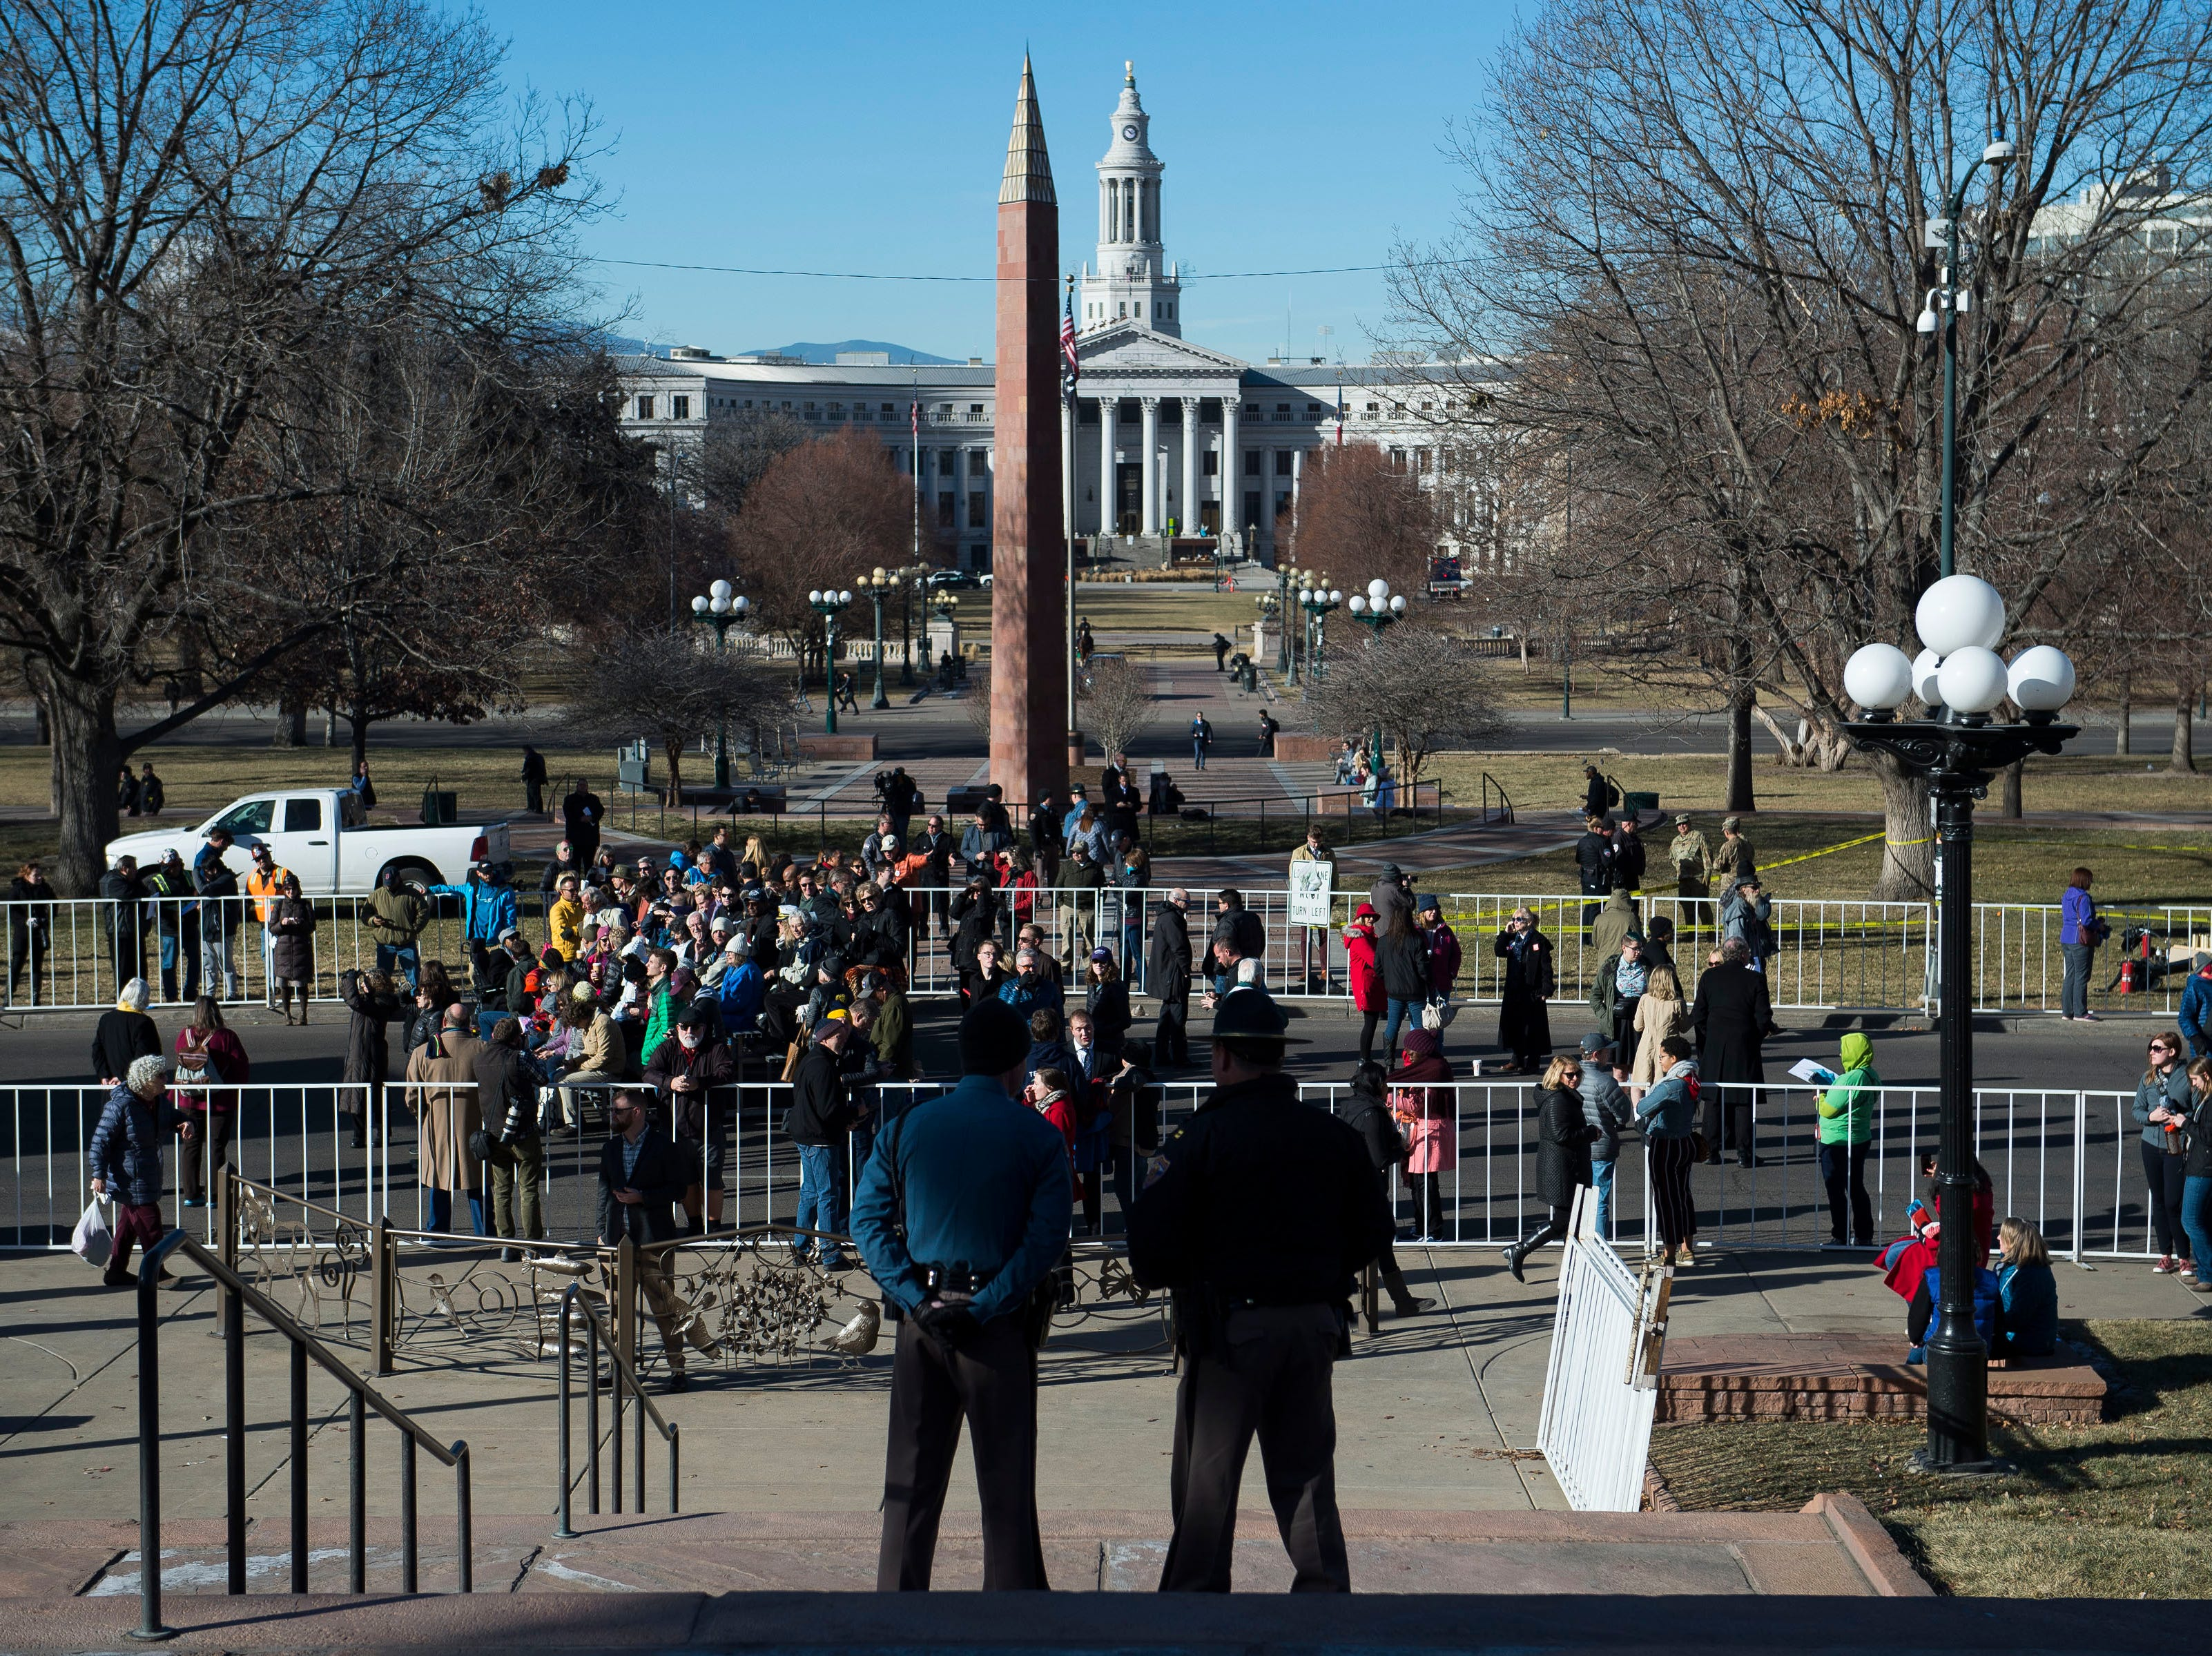 A small crowd begins to gather in a cordoned-off area of Lincoln Street before the inauguration of Colorado State Governor Jared Polis on Tuesday, Jan. 8, 2019, in front of the Colorado State Capital building in Denver, Colo.